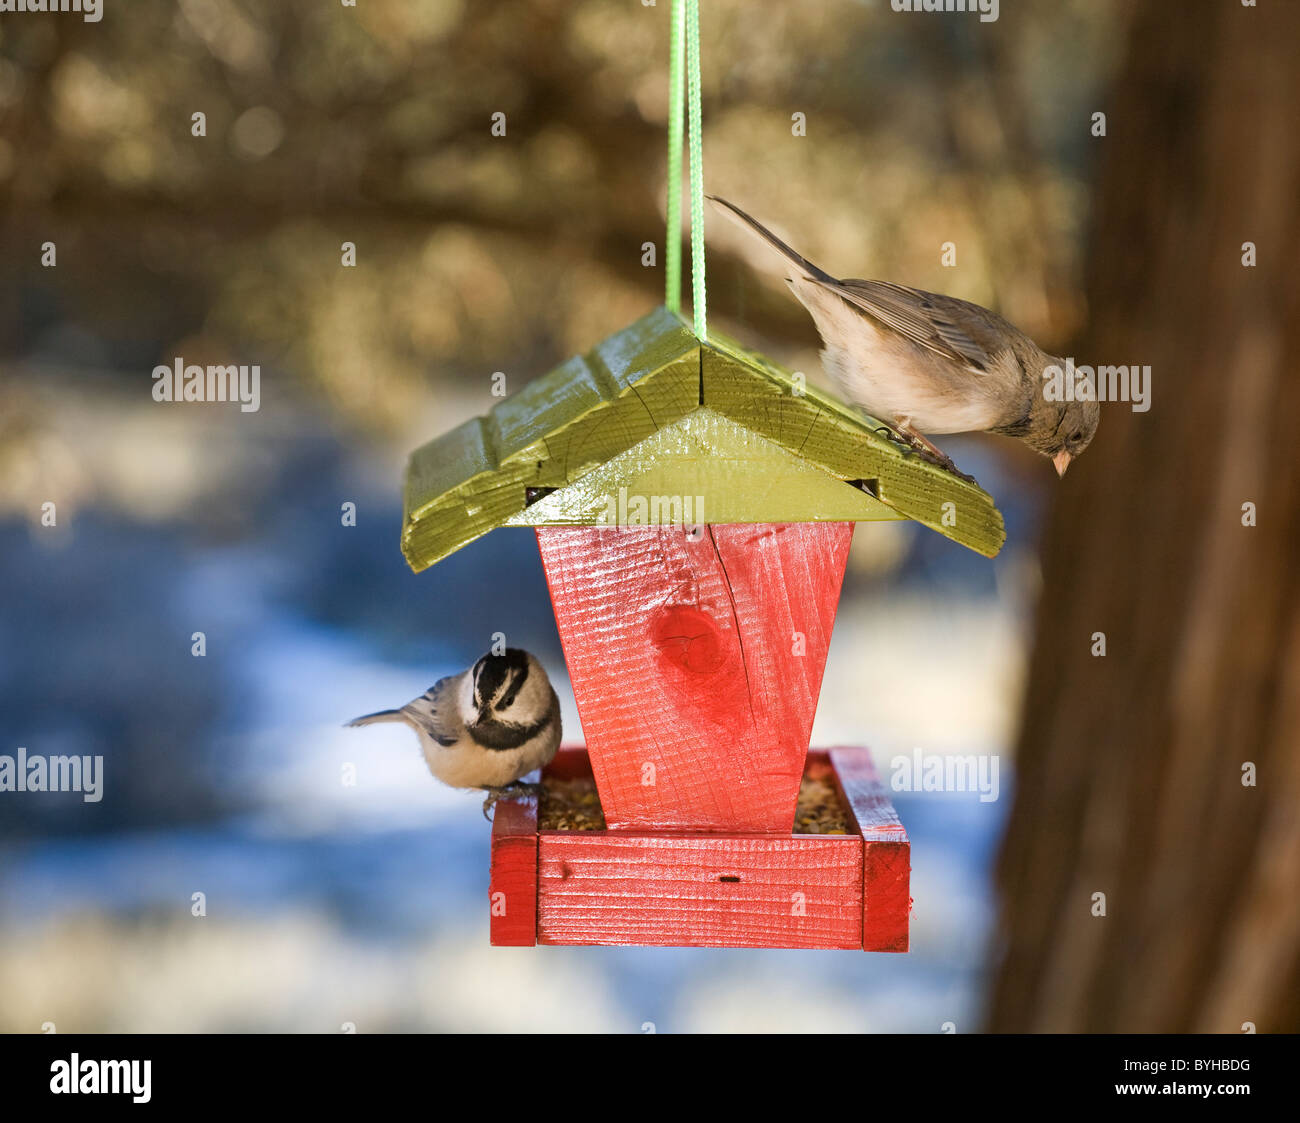 A mountain chickadee and a female house finch feed from a bird feeder - Stock Image